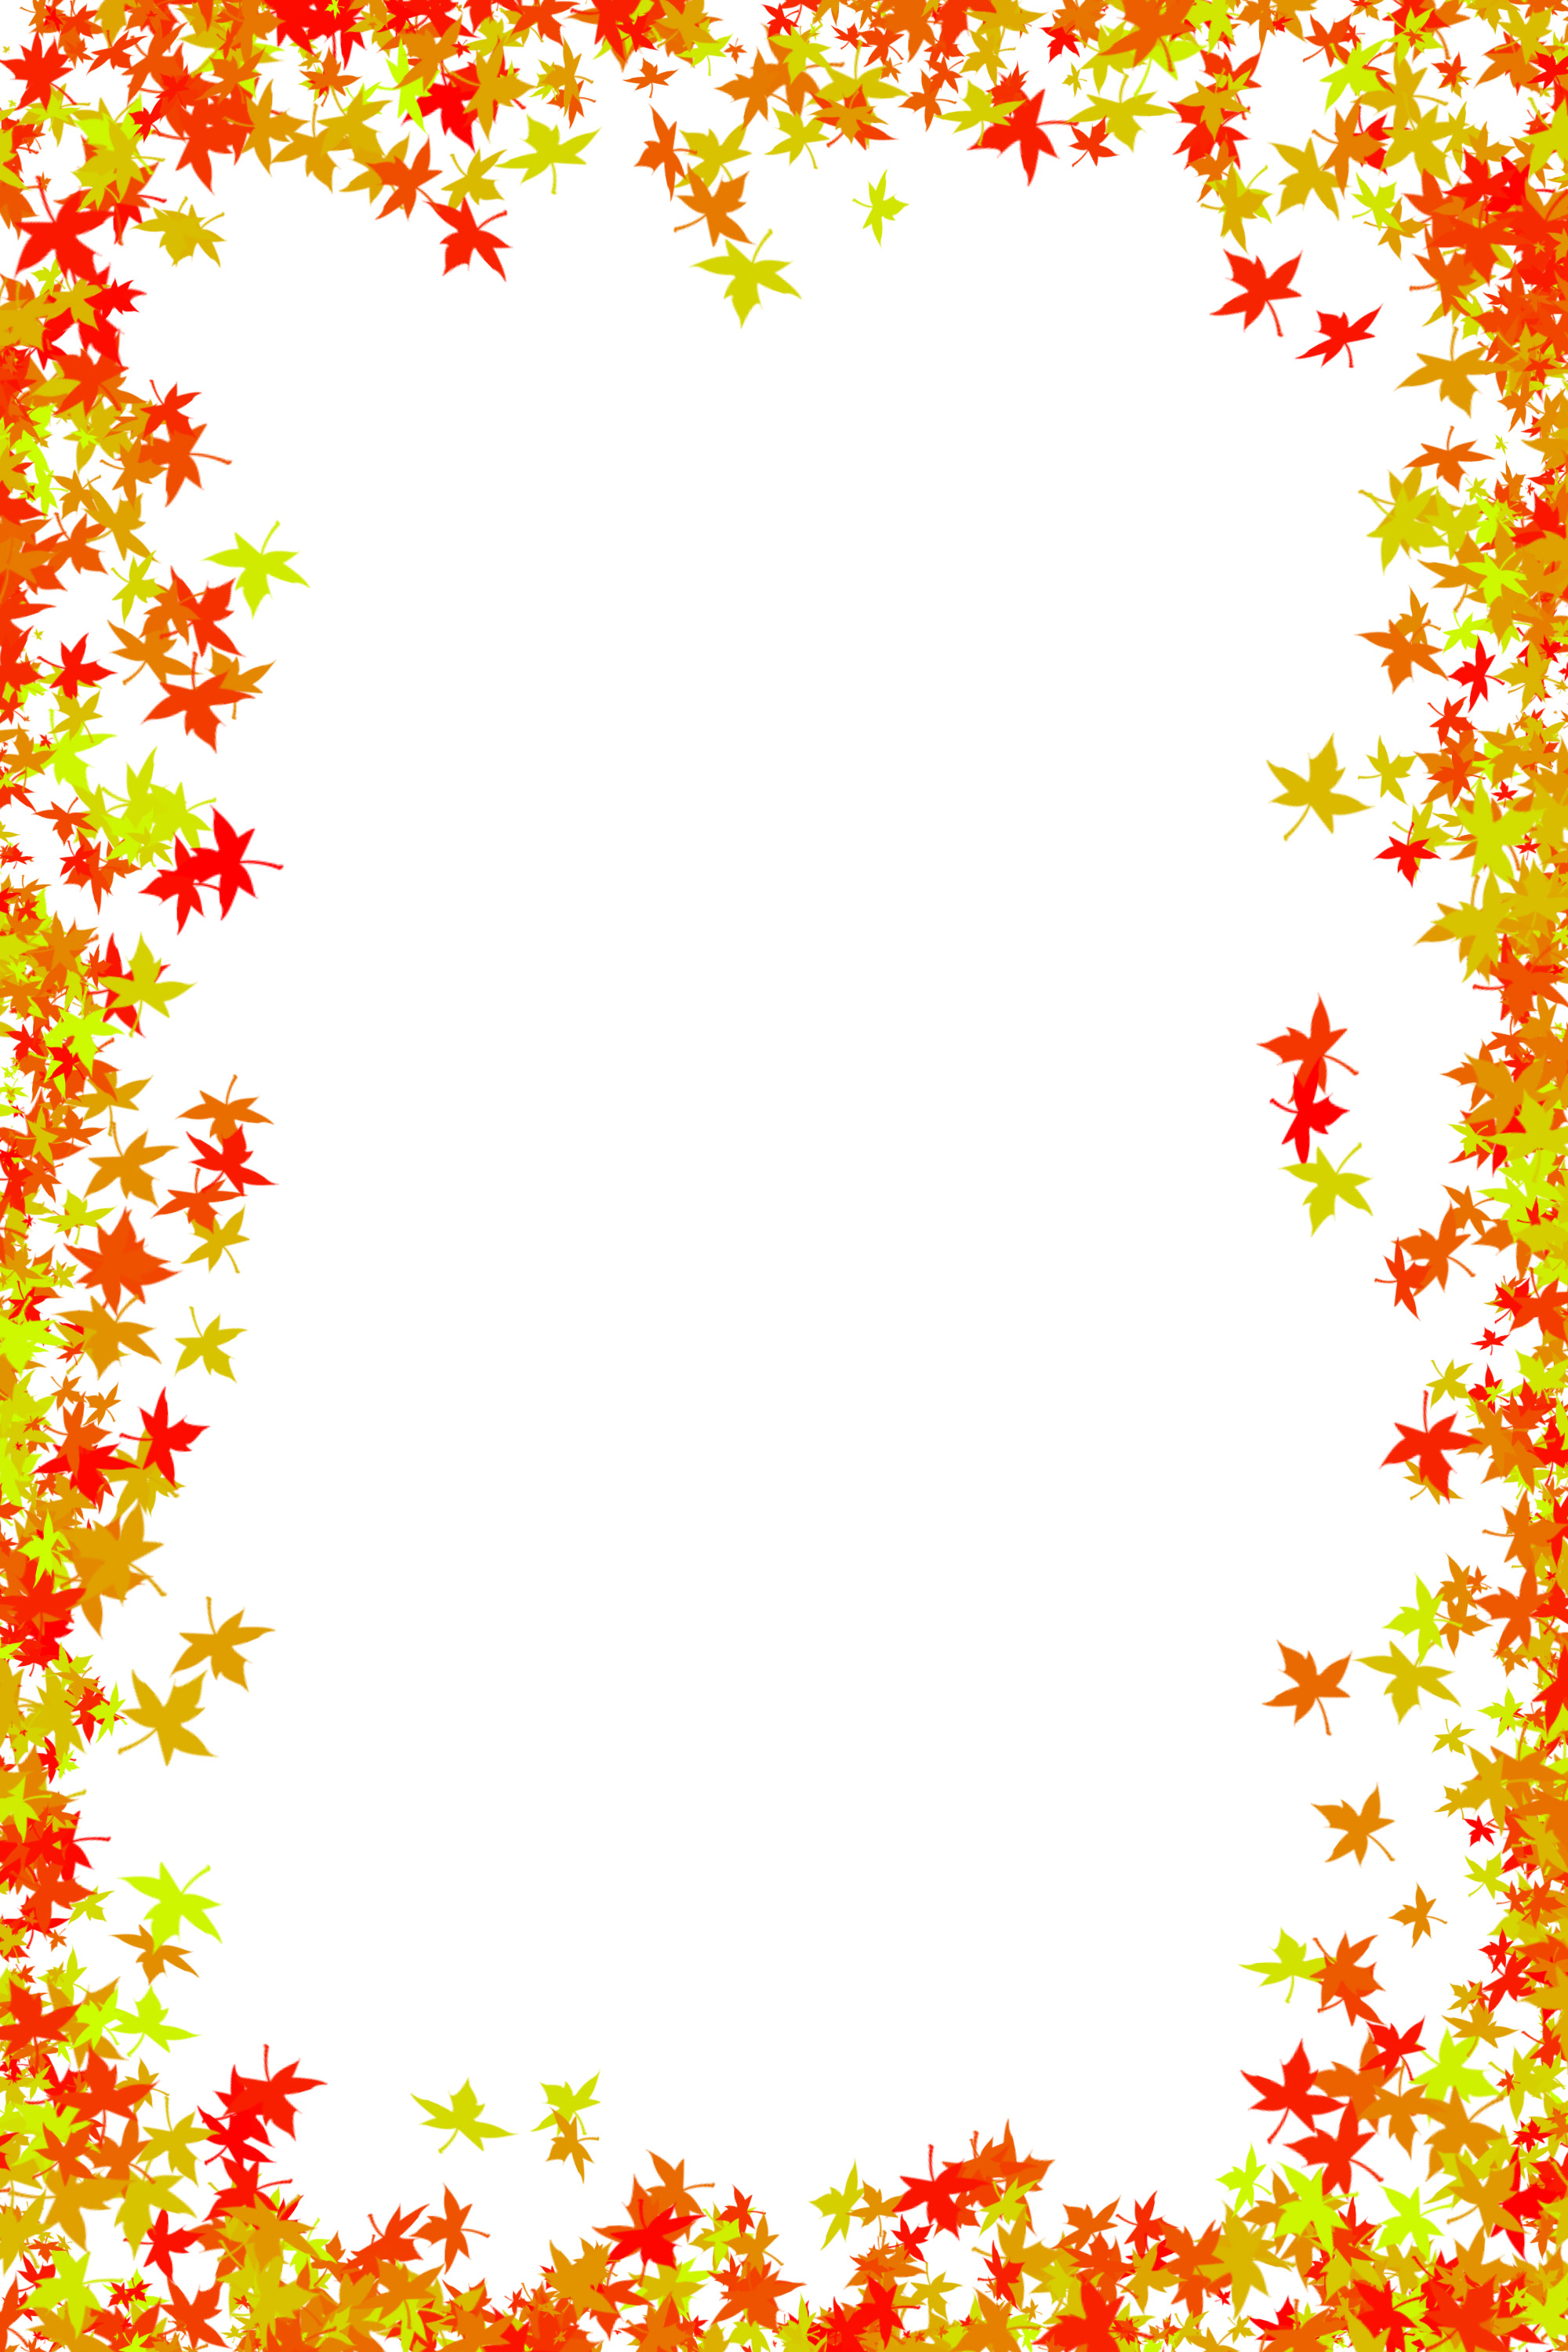 Maple leaves autumn frame free backgrounds and textures cr103 com